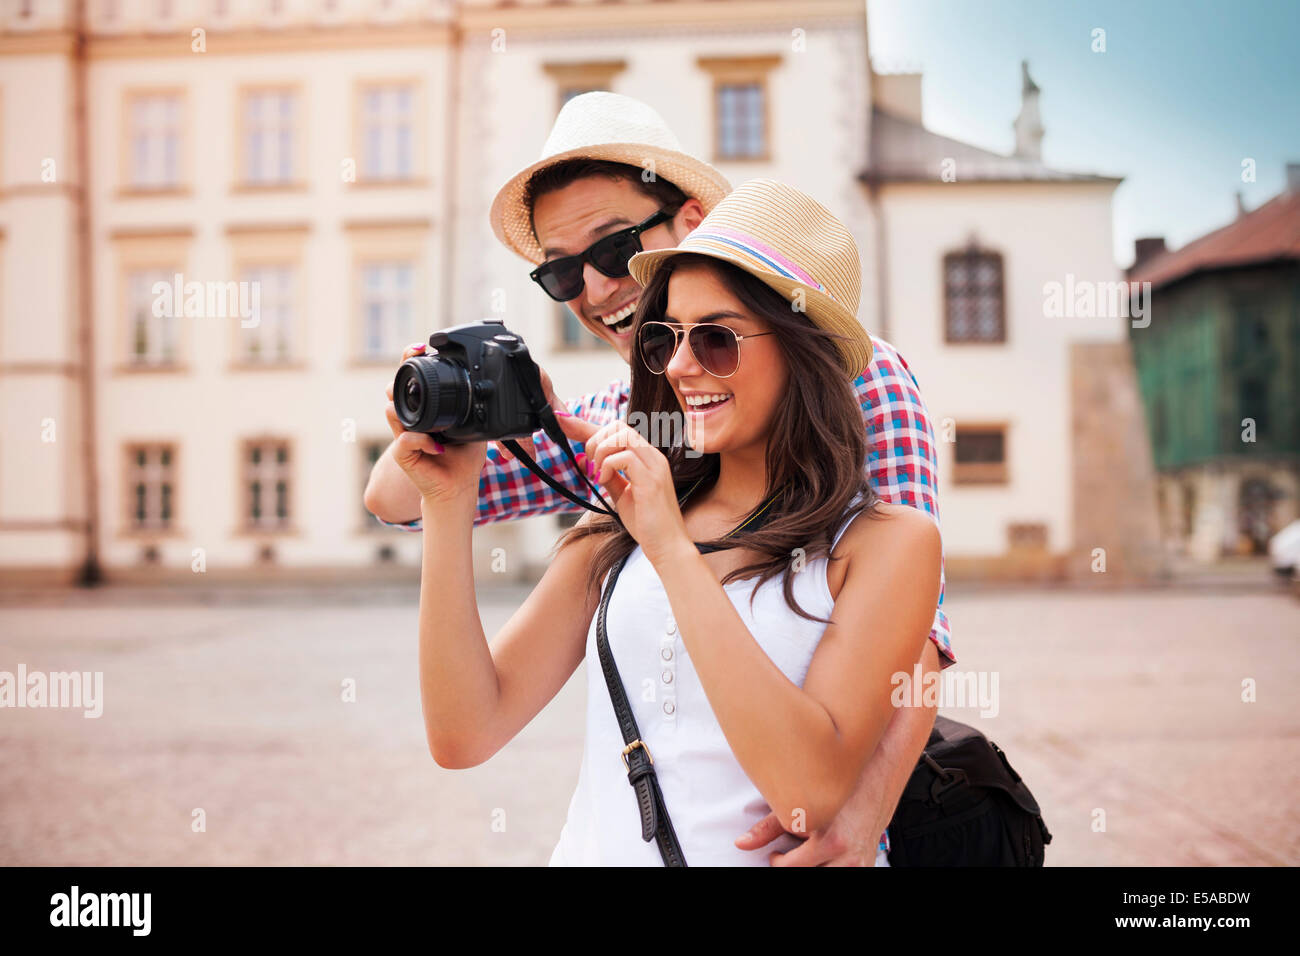 Cute couple looking on their photos on camera, Debica, Poland - Stock Image